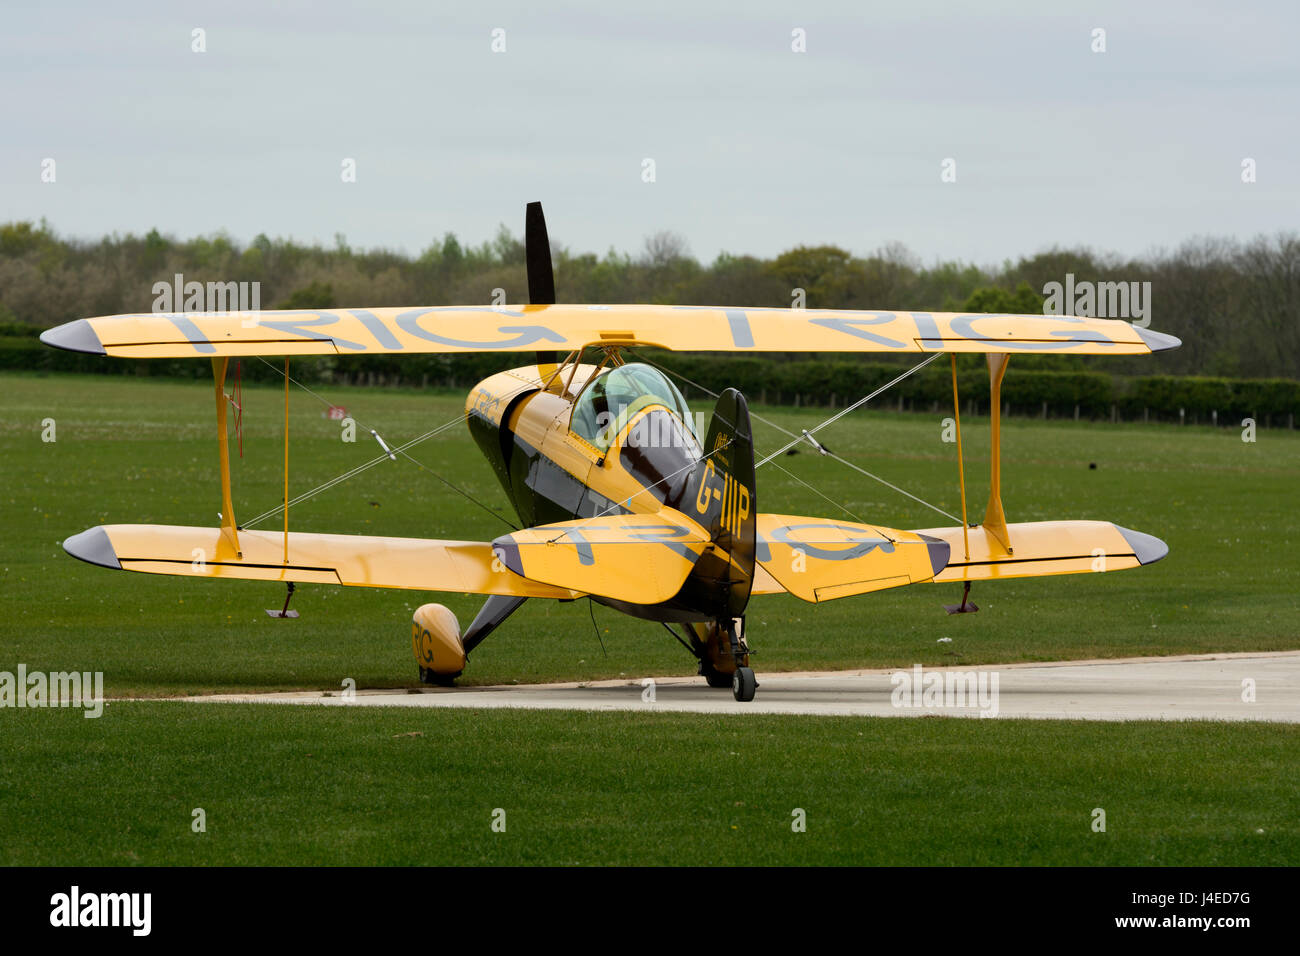 Pitts Special at Sywell Aerodrome, Northamptonshire, England, UK (G-IIIP) - Stock Image